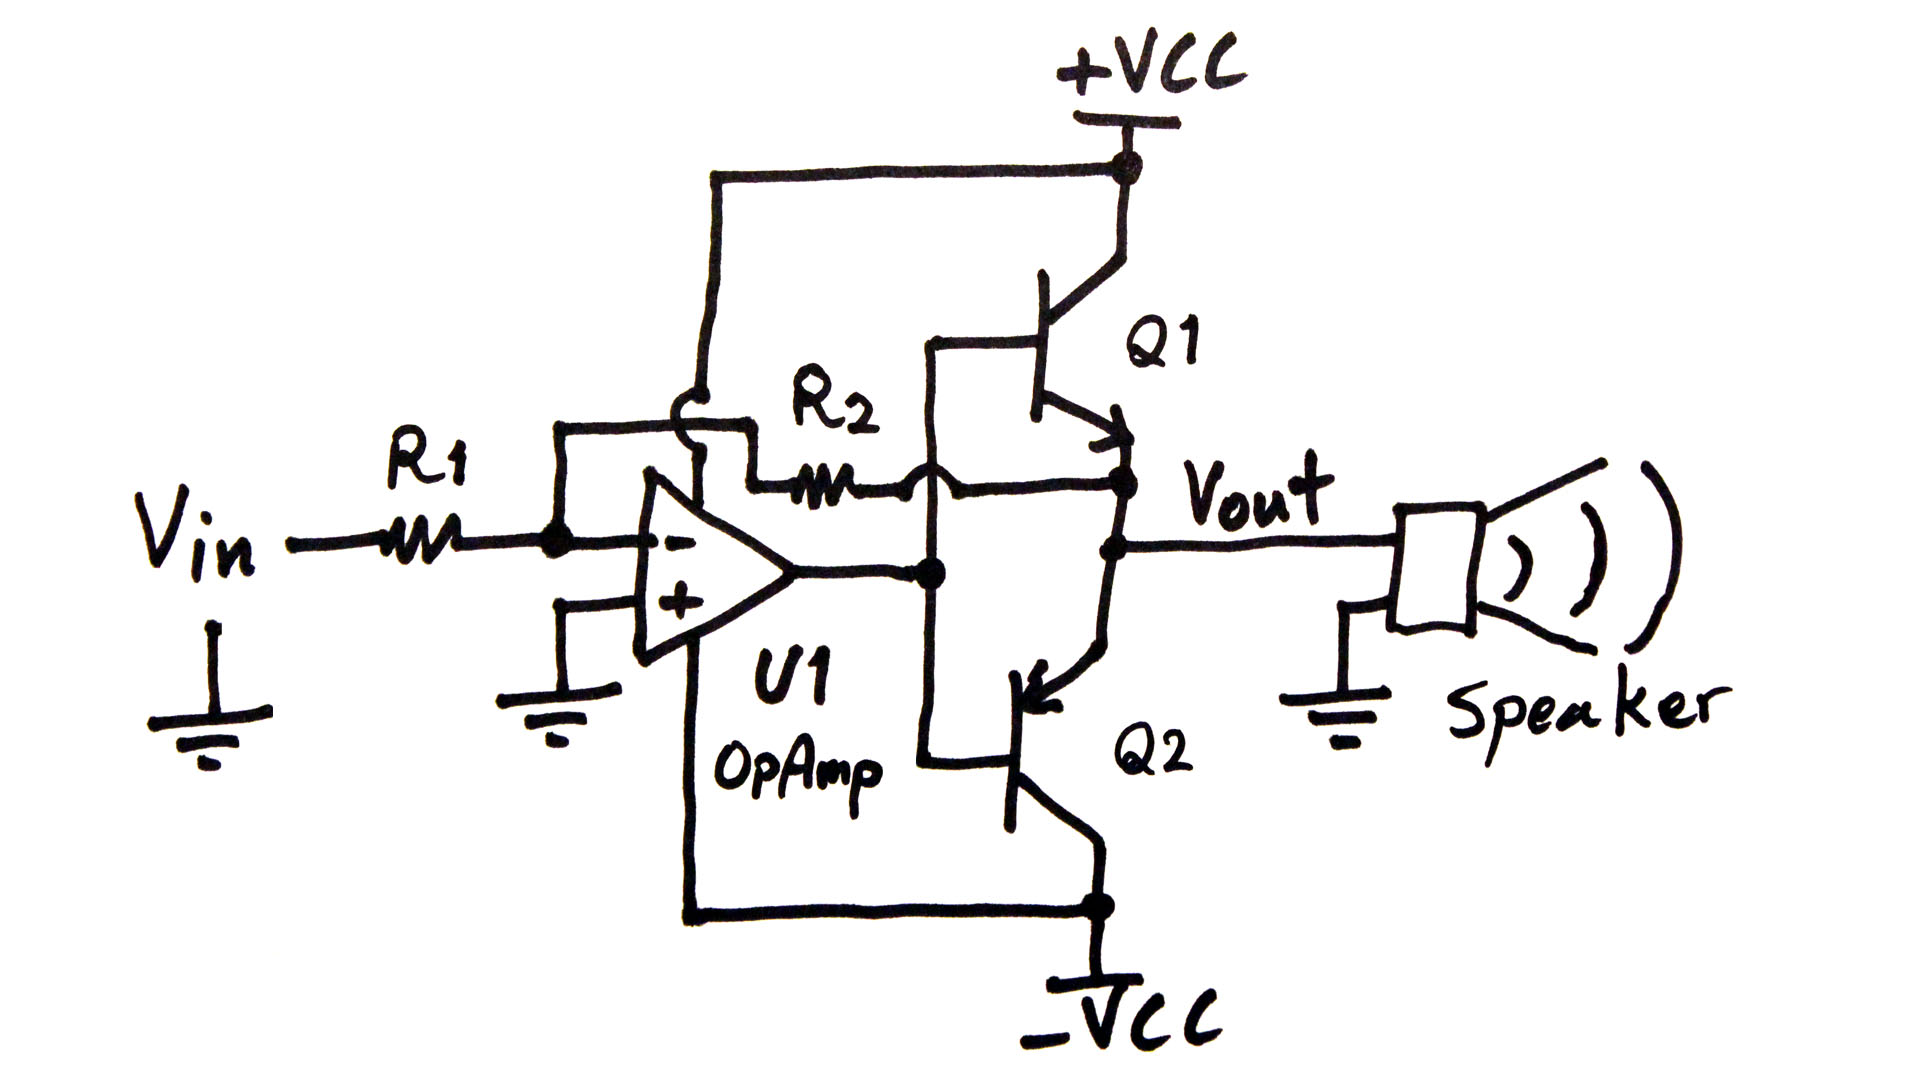 Making An Audio Power Amplifier Drive A Sub Woofer Electroboom Ideas Circuit Of Small Transistor Amplifiers